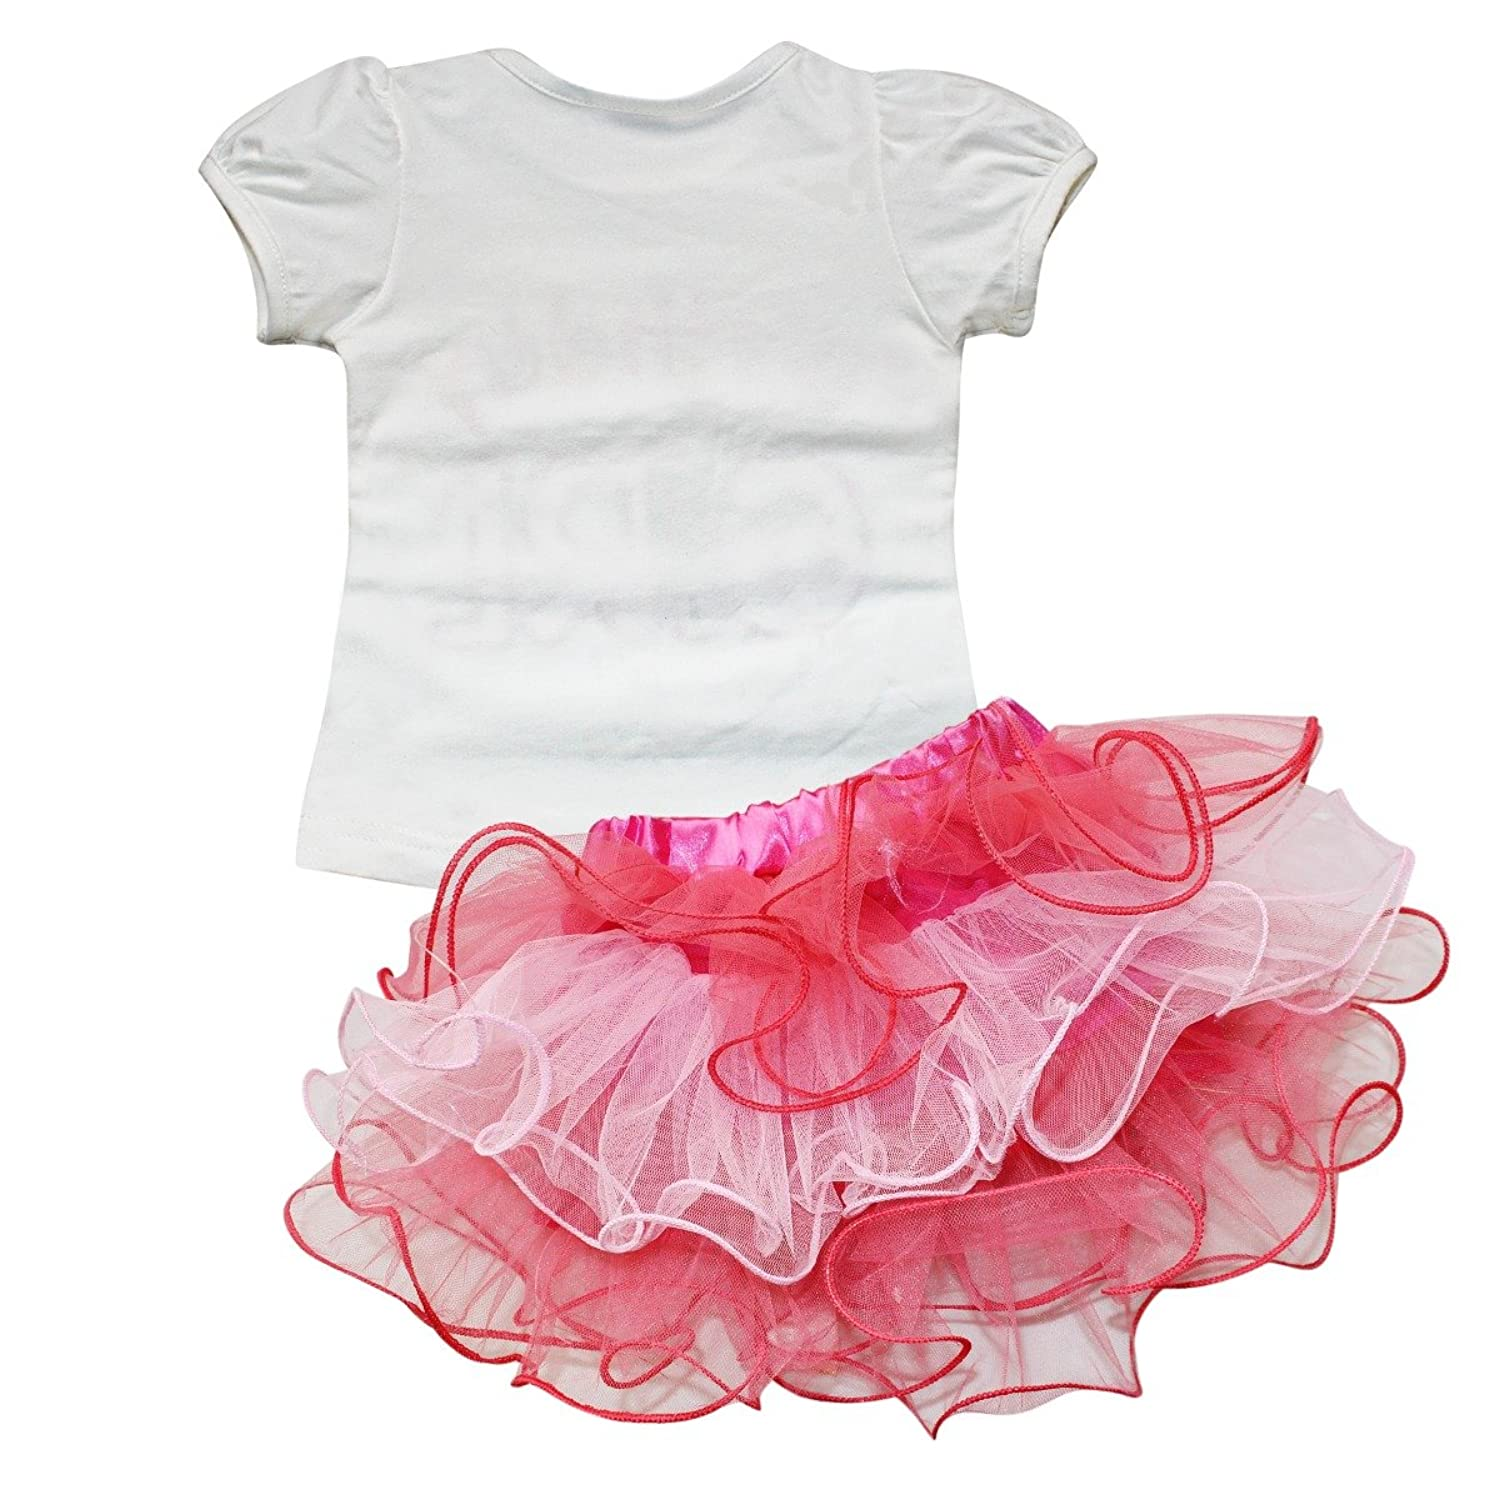 IEFiEL Infant Baby Girls 2 Pieces Outfit Sets Top T Shirt Tutu Skirt Party Clothes Set Amazoncouk Clothing